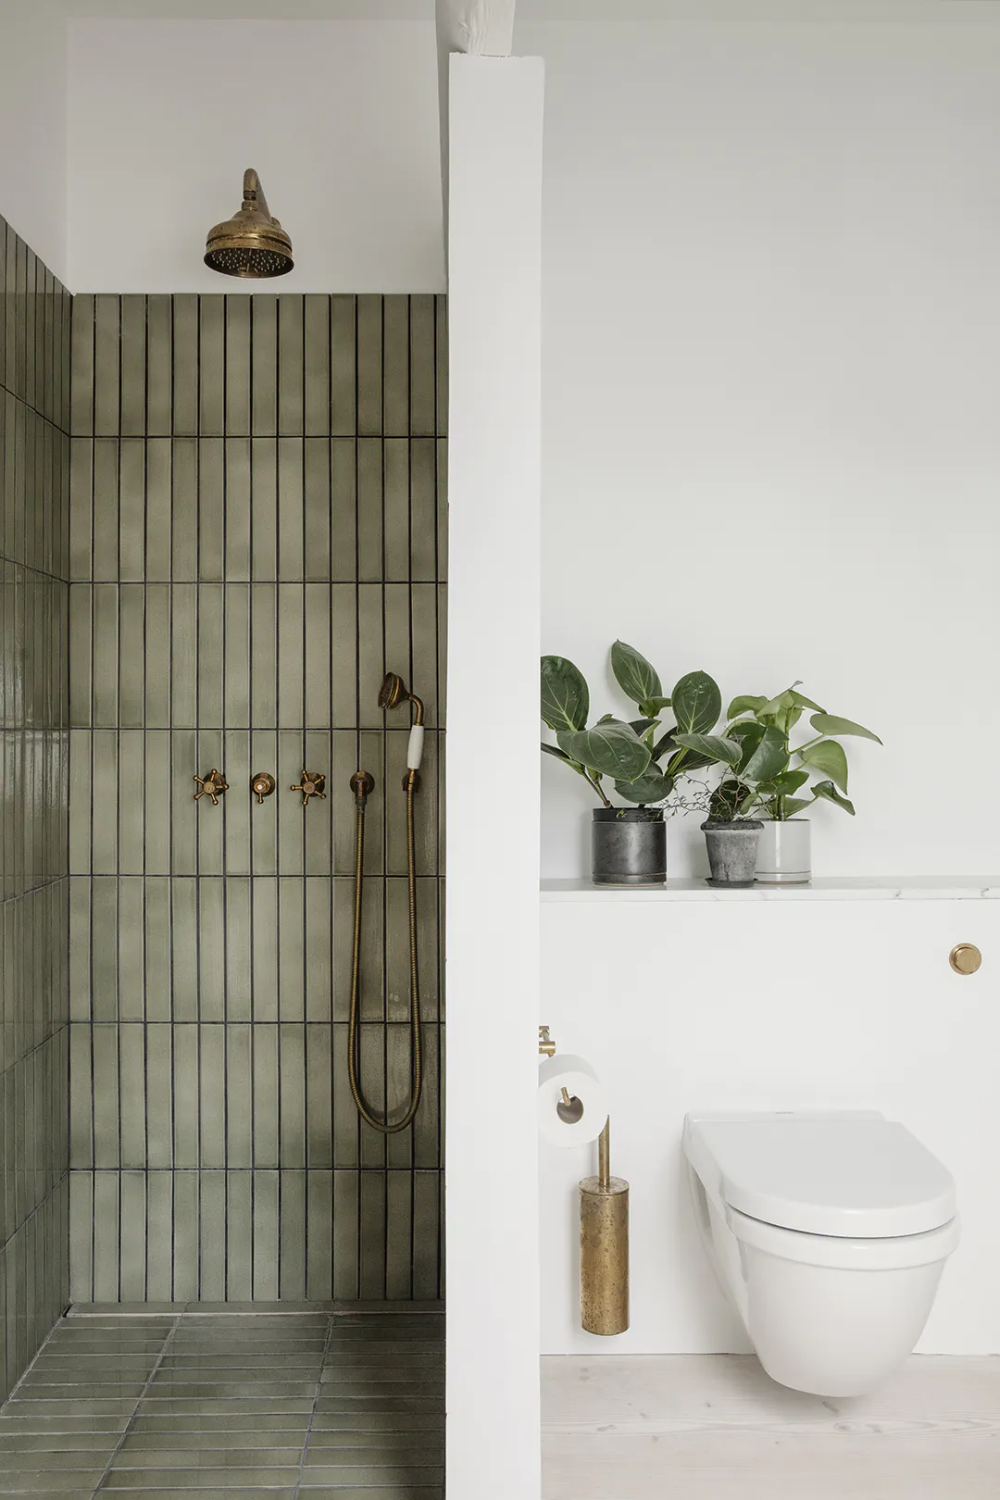 Bathroom in a nordic style with dark green tiles.